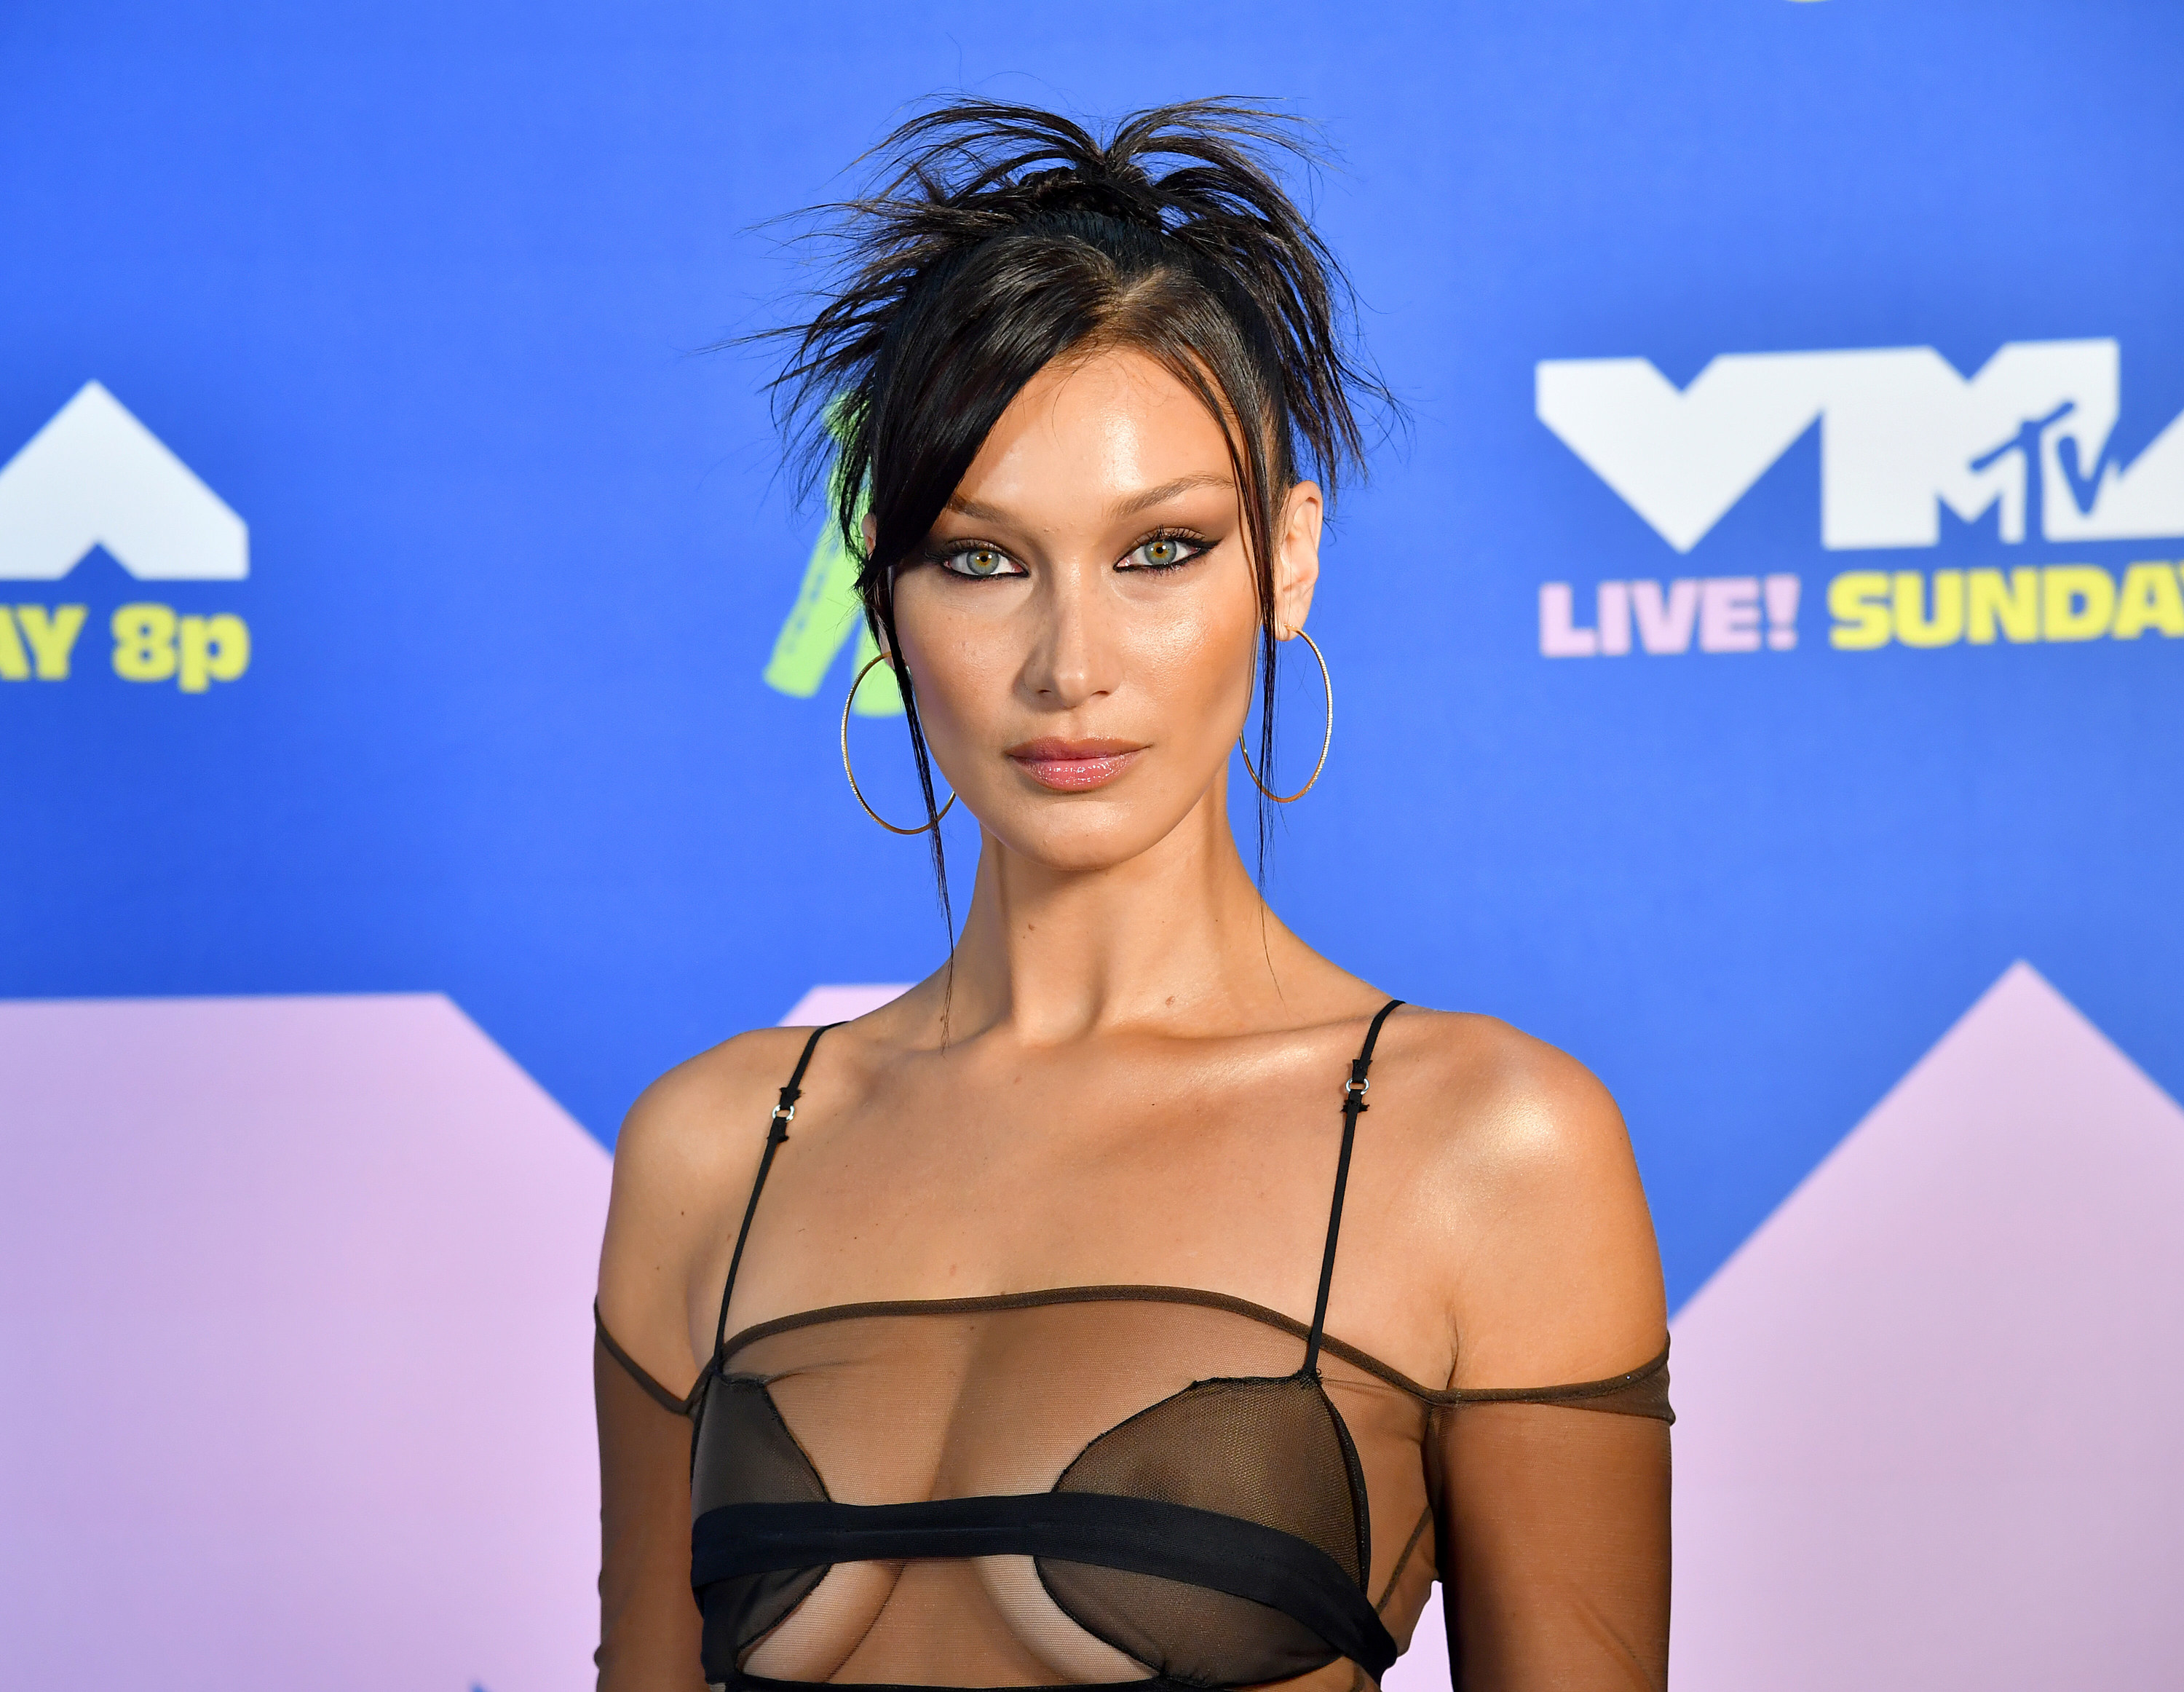 Bella Hadid attends the 2020 MTV Video Music Awards.